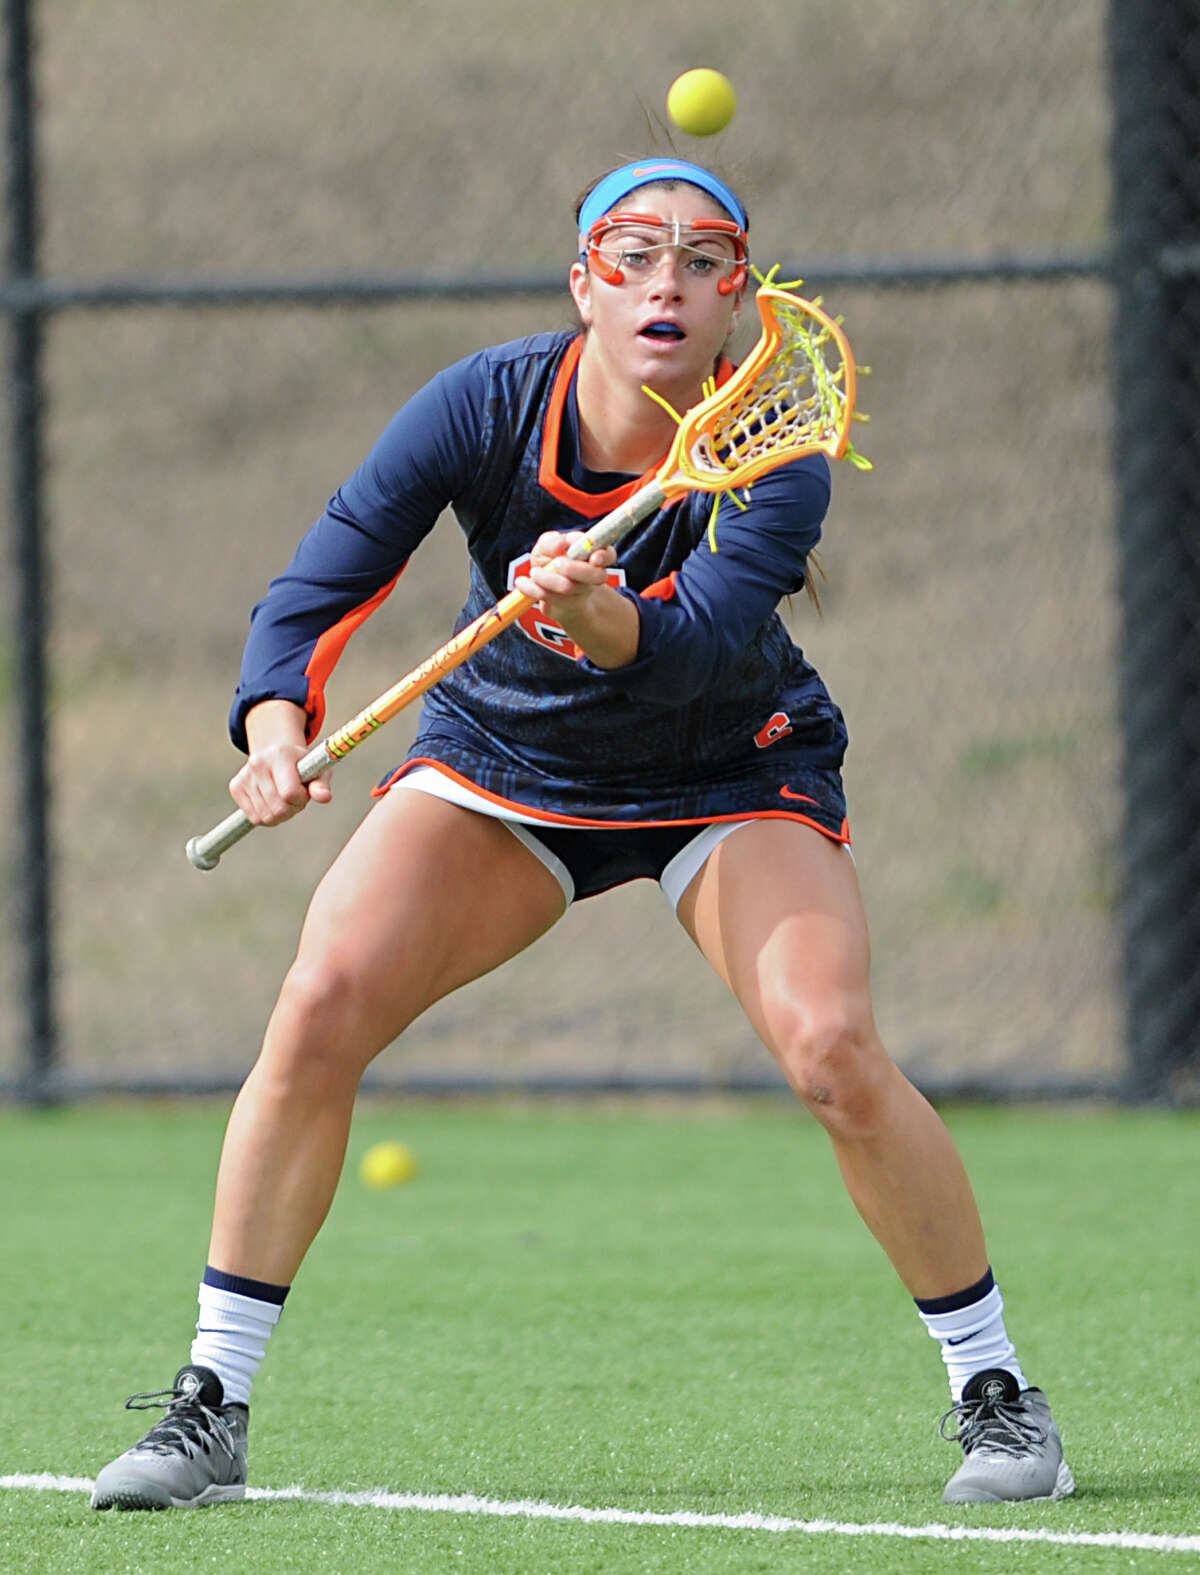 Syracuse women's lacrosse player Kayla Treanor catches the ball during a game against University at Albany on Tuesday, April 12, 2016 in Albany, N.Y. Treanor, a Niskayuna native, is one of the top players in the country. (Lori Van Buren / Times Union)